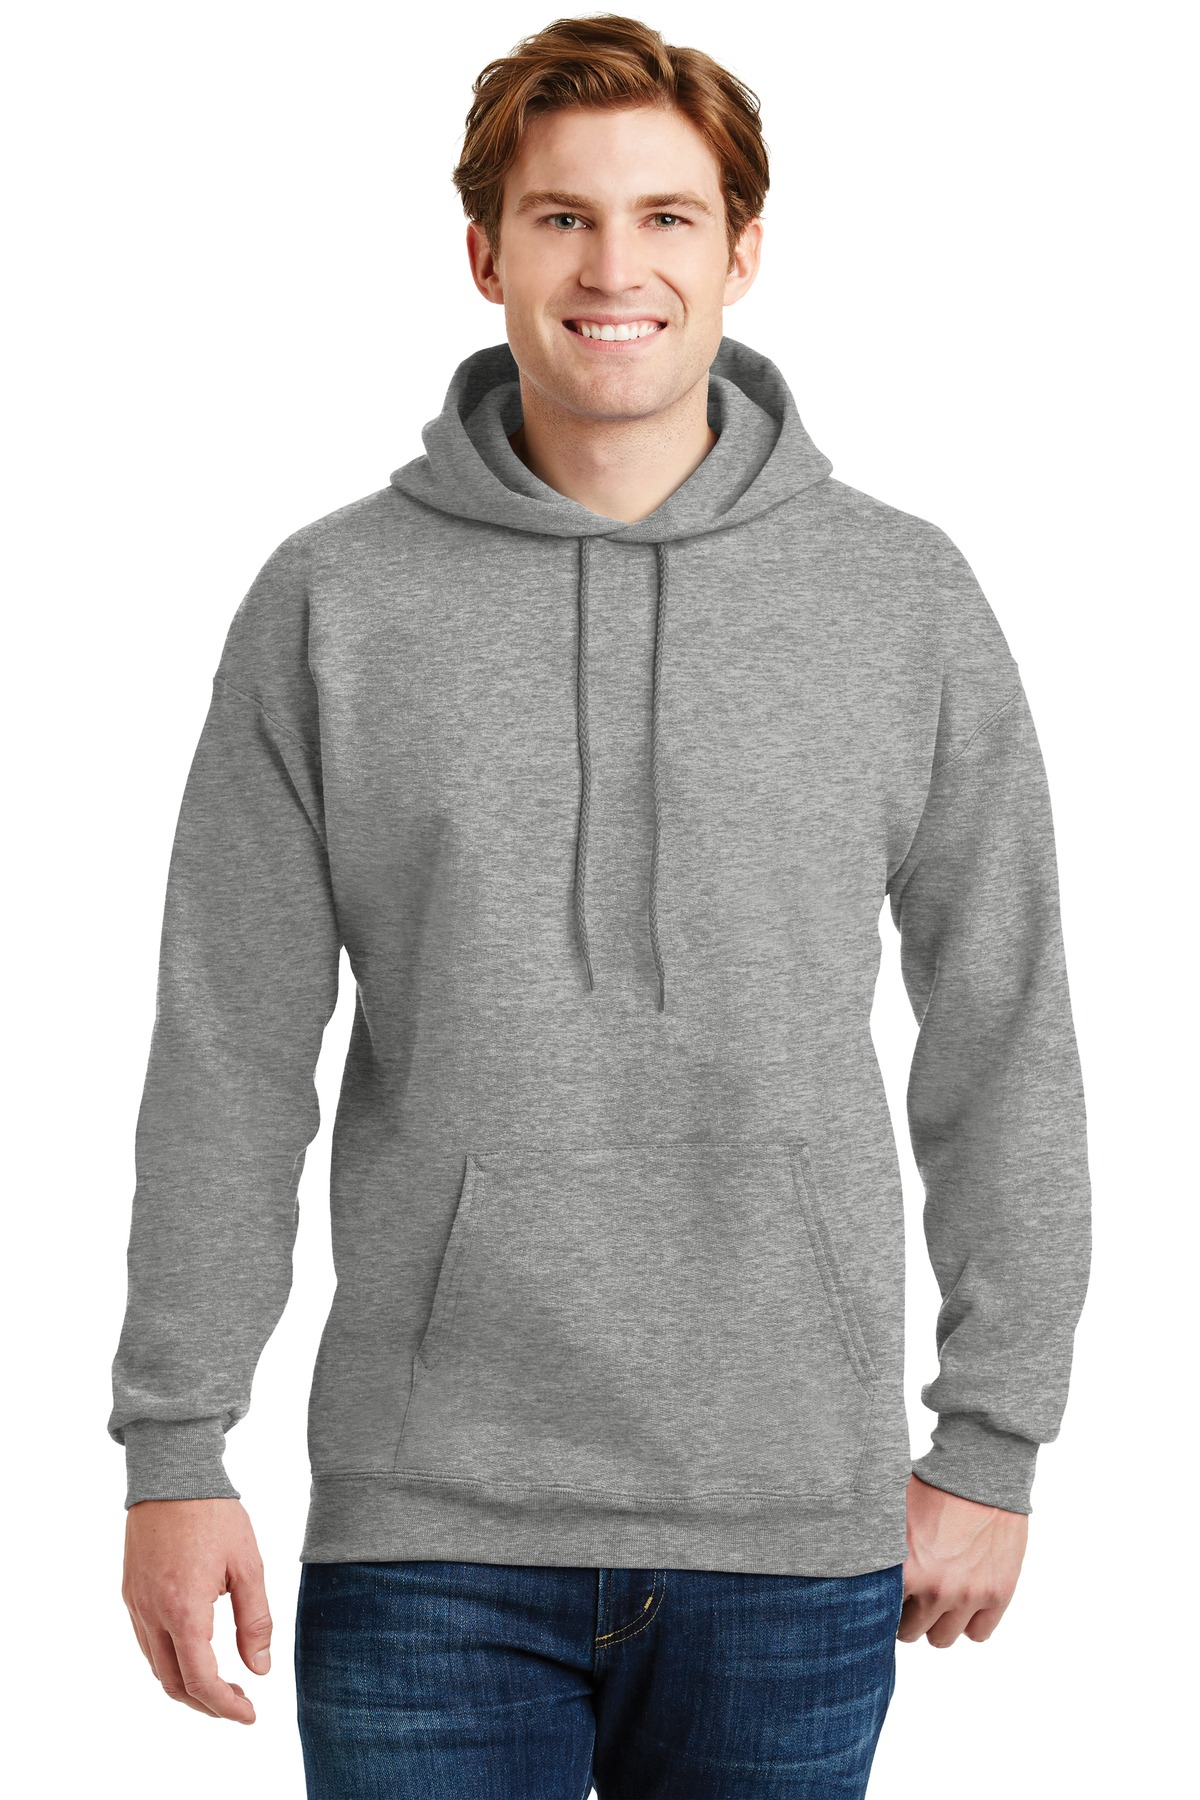 Hanes ®  Ultimate Cotton ®  - Pullover Hooded Sweatshirt.  F170 - Light Steel